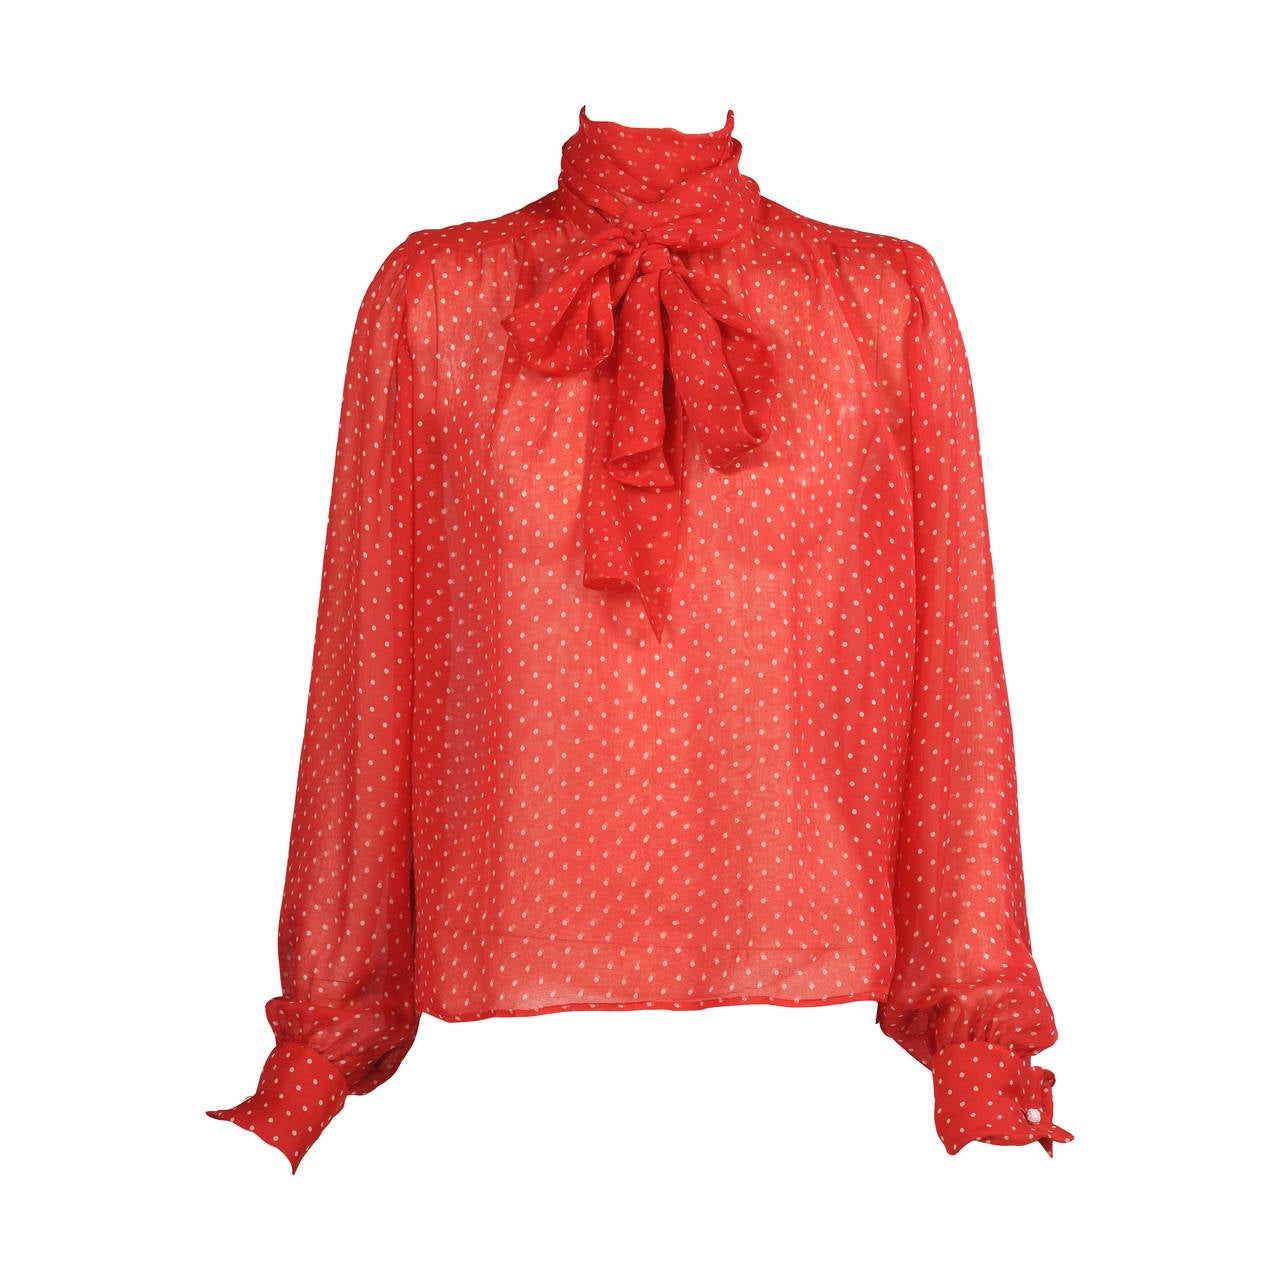 Red Blouses Polka Dot ($ - $): 30 of items - Shop Red Blouses Polka Dot from ALL your favorite stores & find HUGE SAVINGS up to 80% off Red Blouses Polka Dot, including GREAT DEALS like Outback Red Tops | Sheer Red And Black Polka Dot Blouse | Color: Black/Red | .